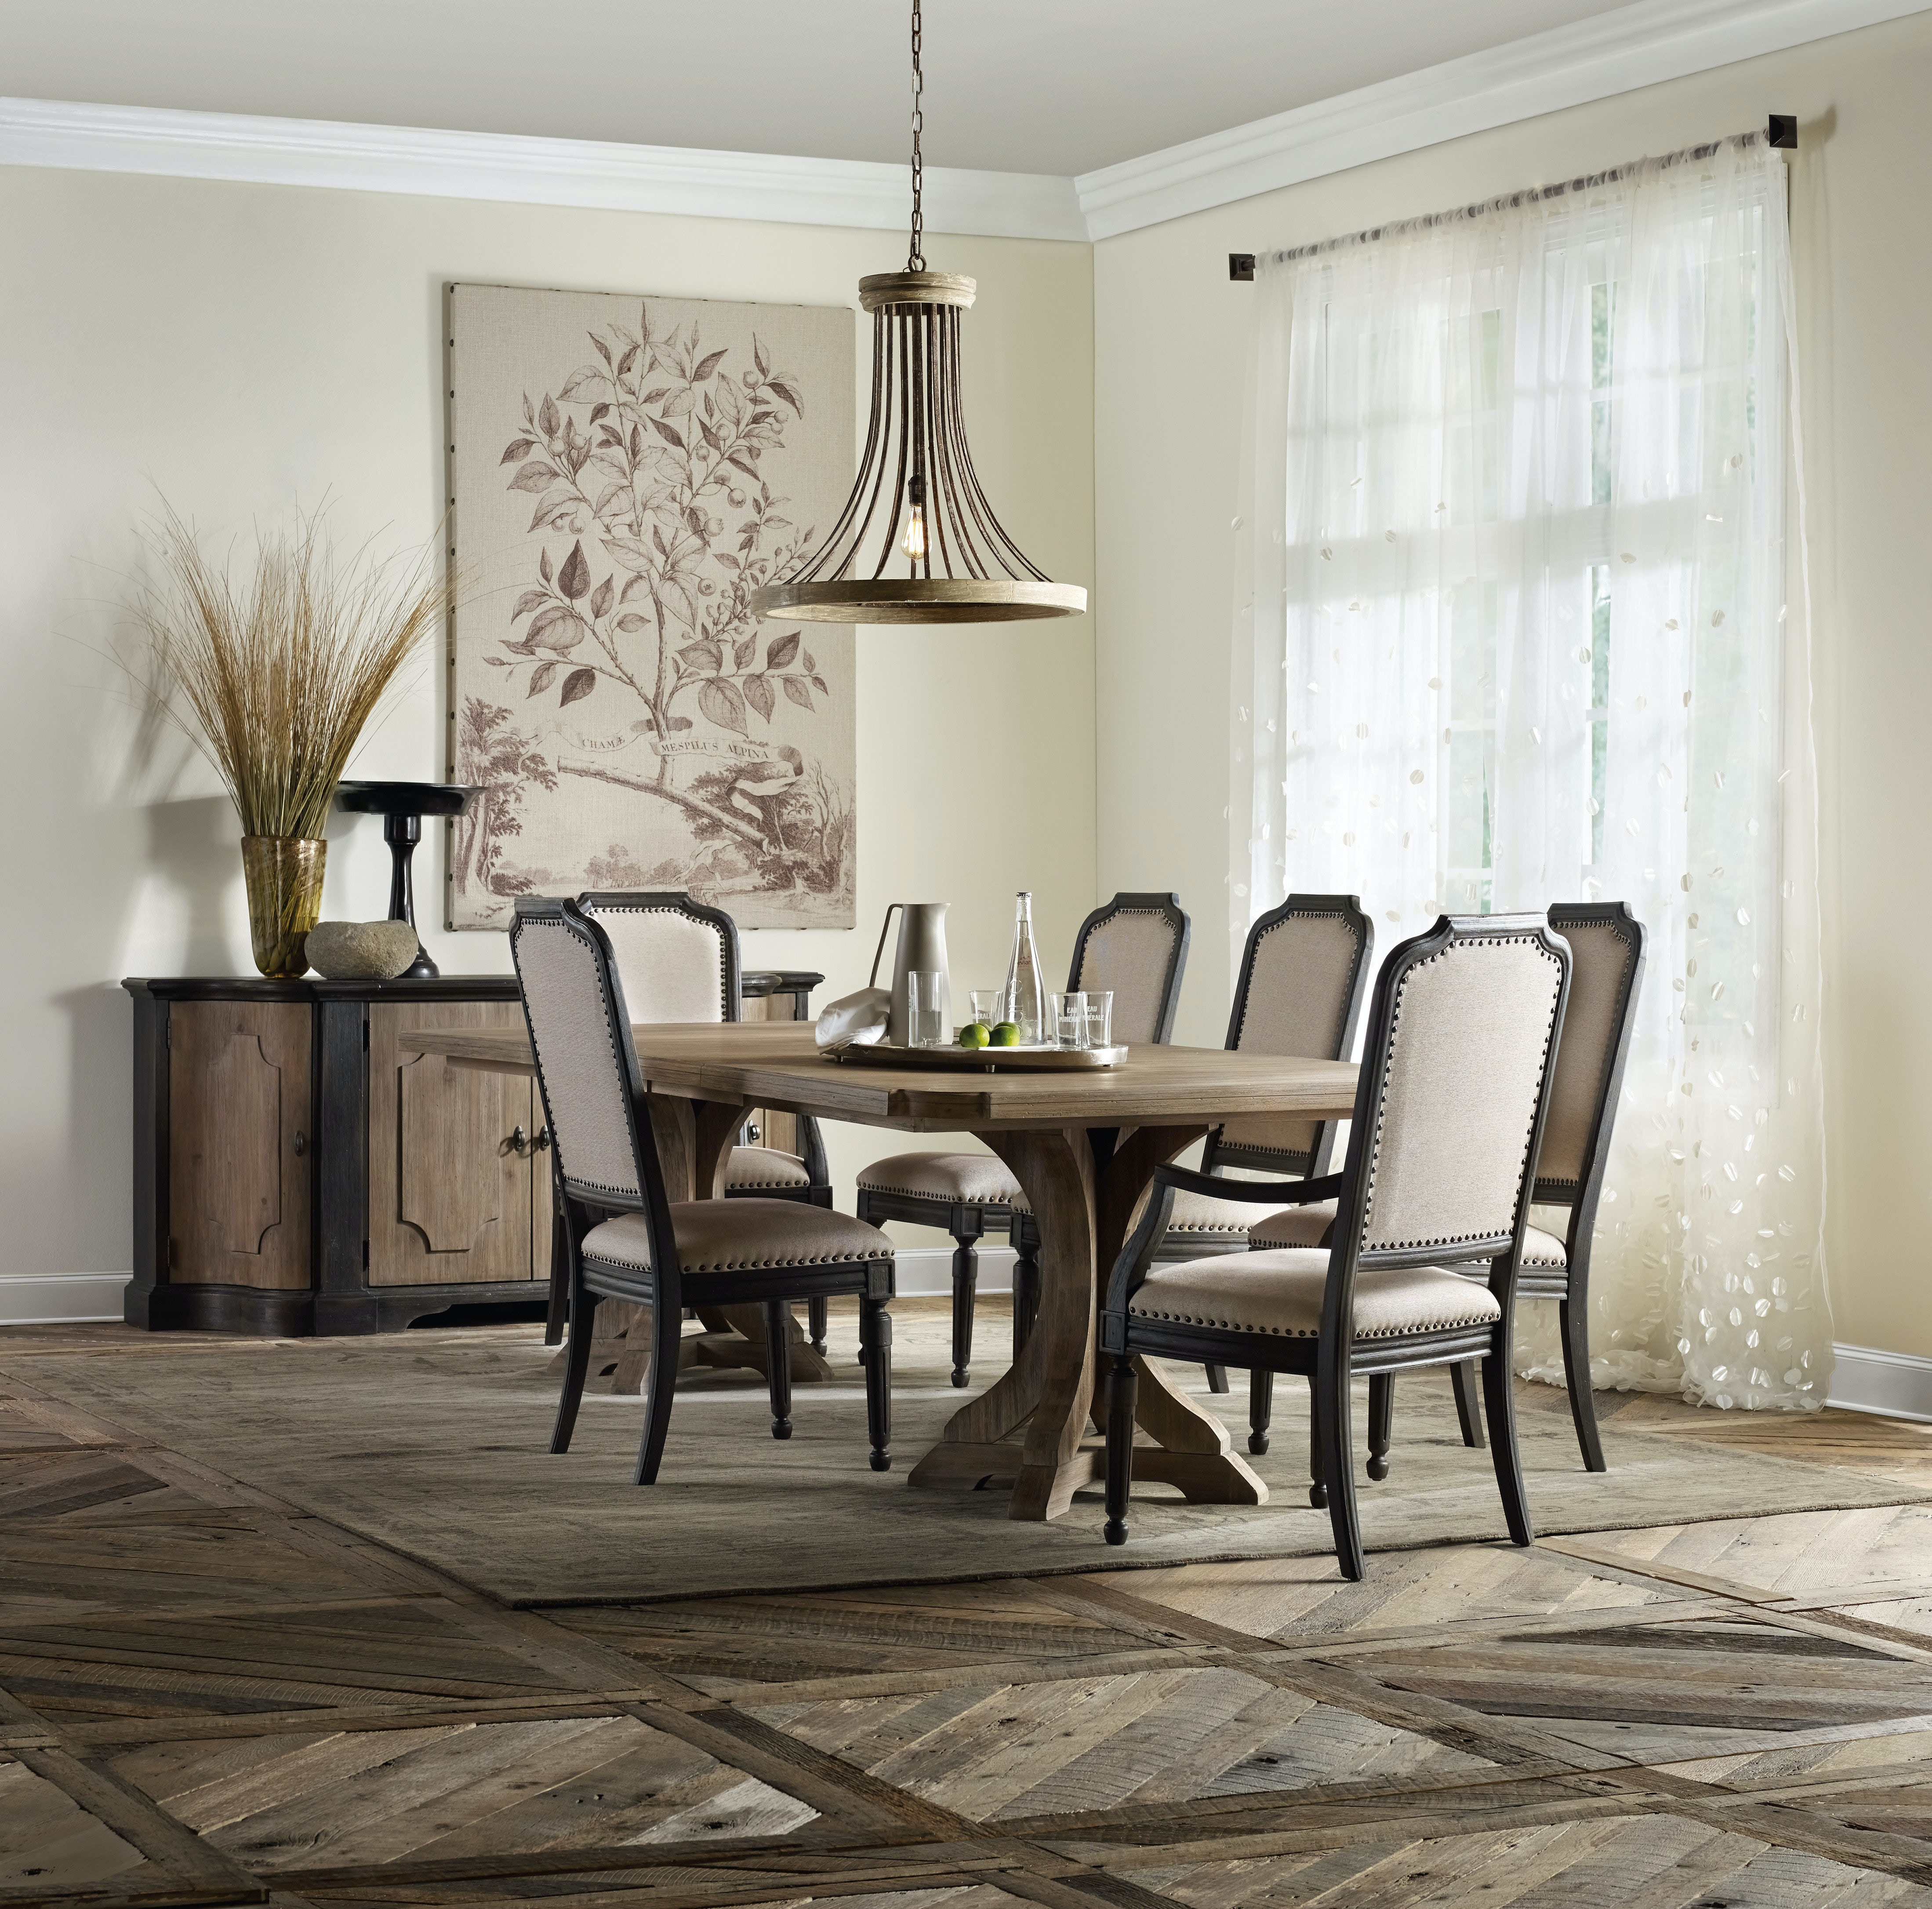 Dining Table With 2 Chairs Hooker Furniture Dining Room Corsica Rectangle Pedestal Dining